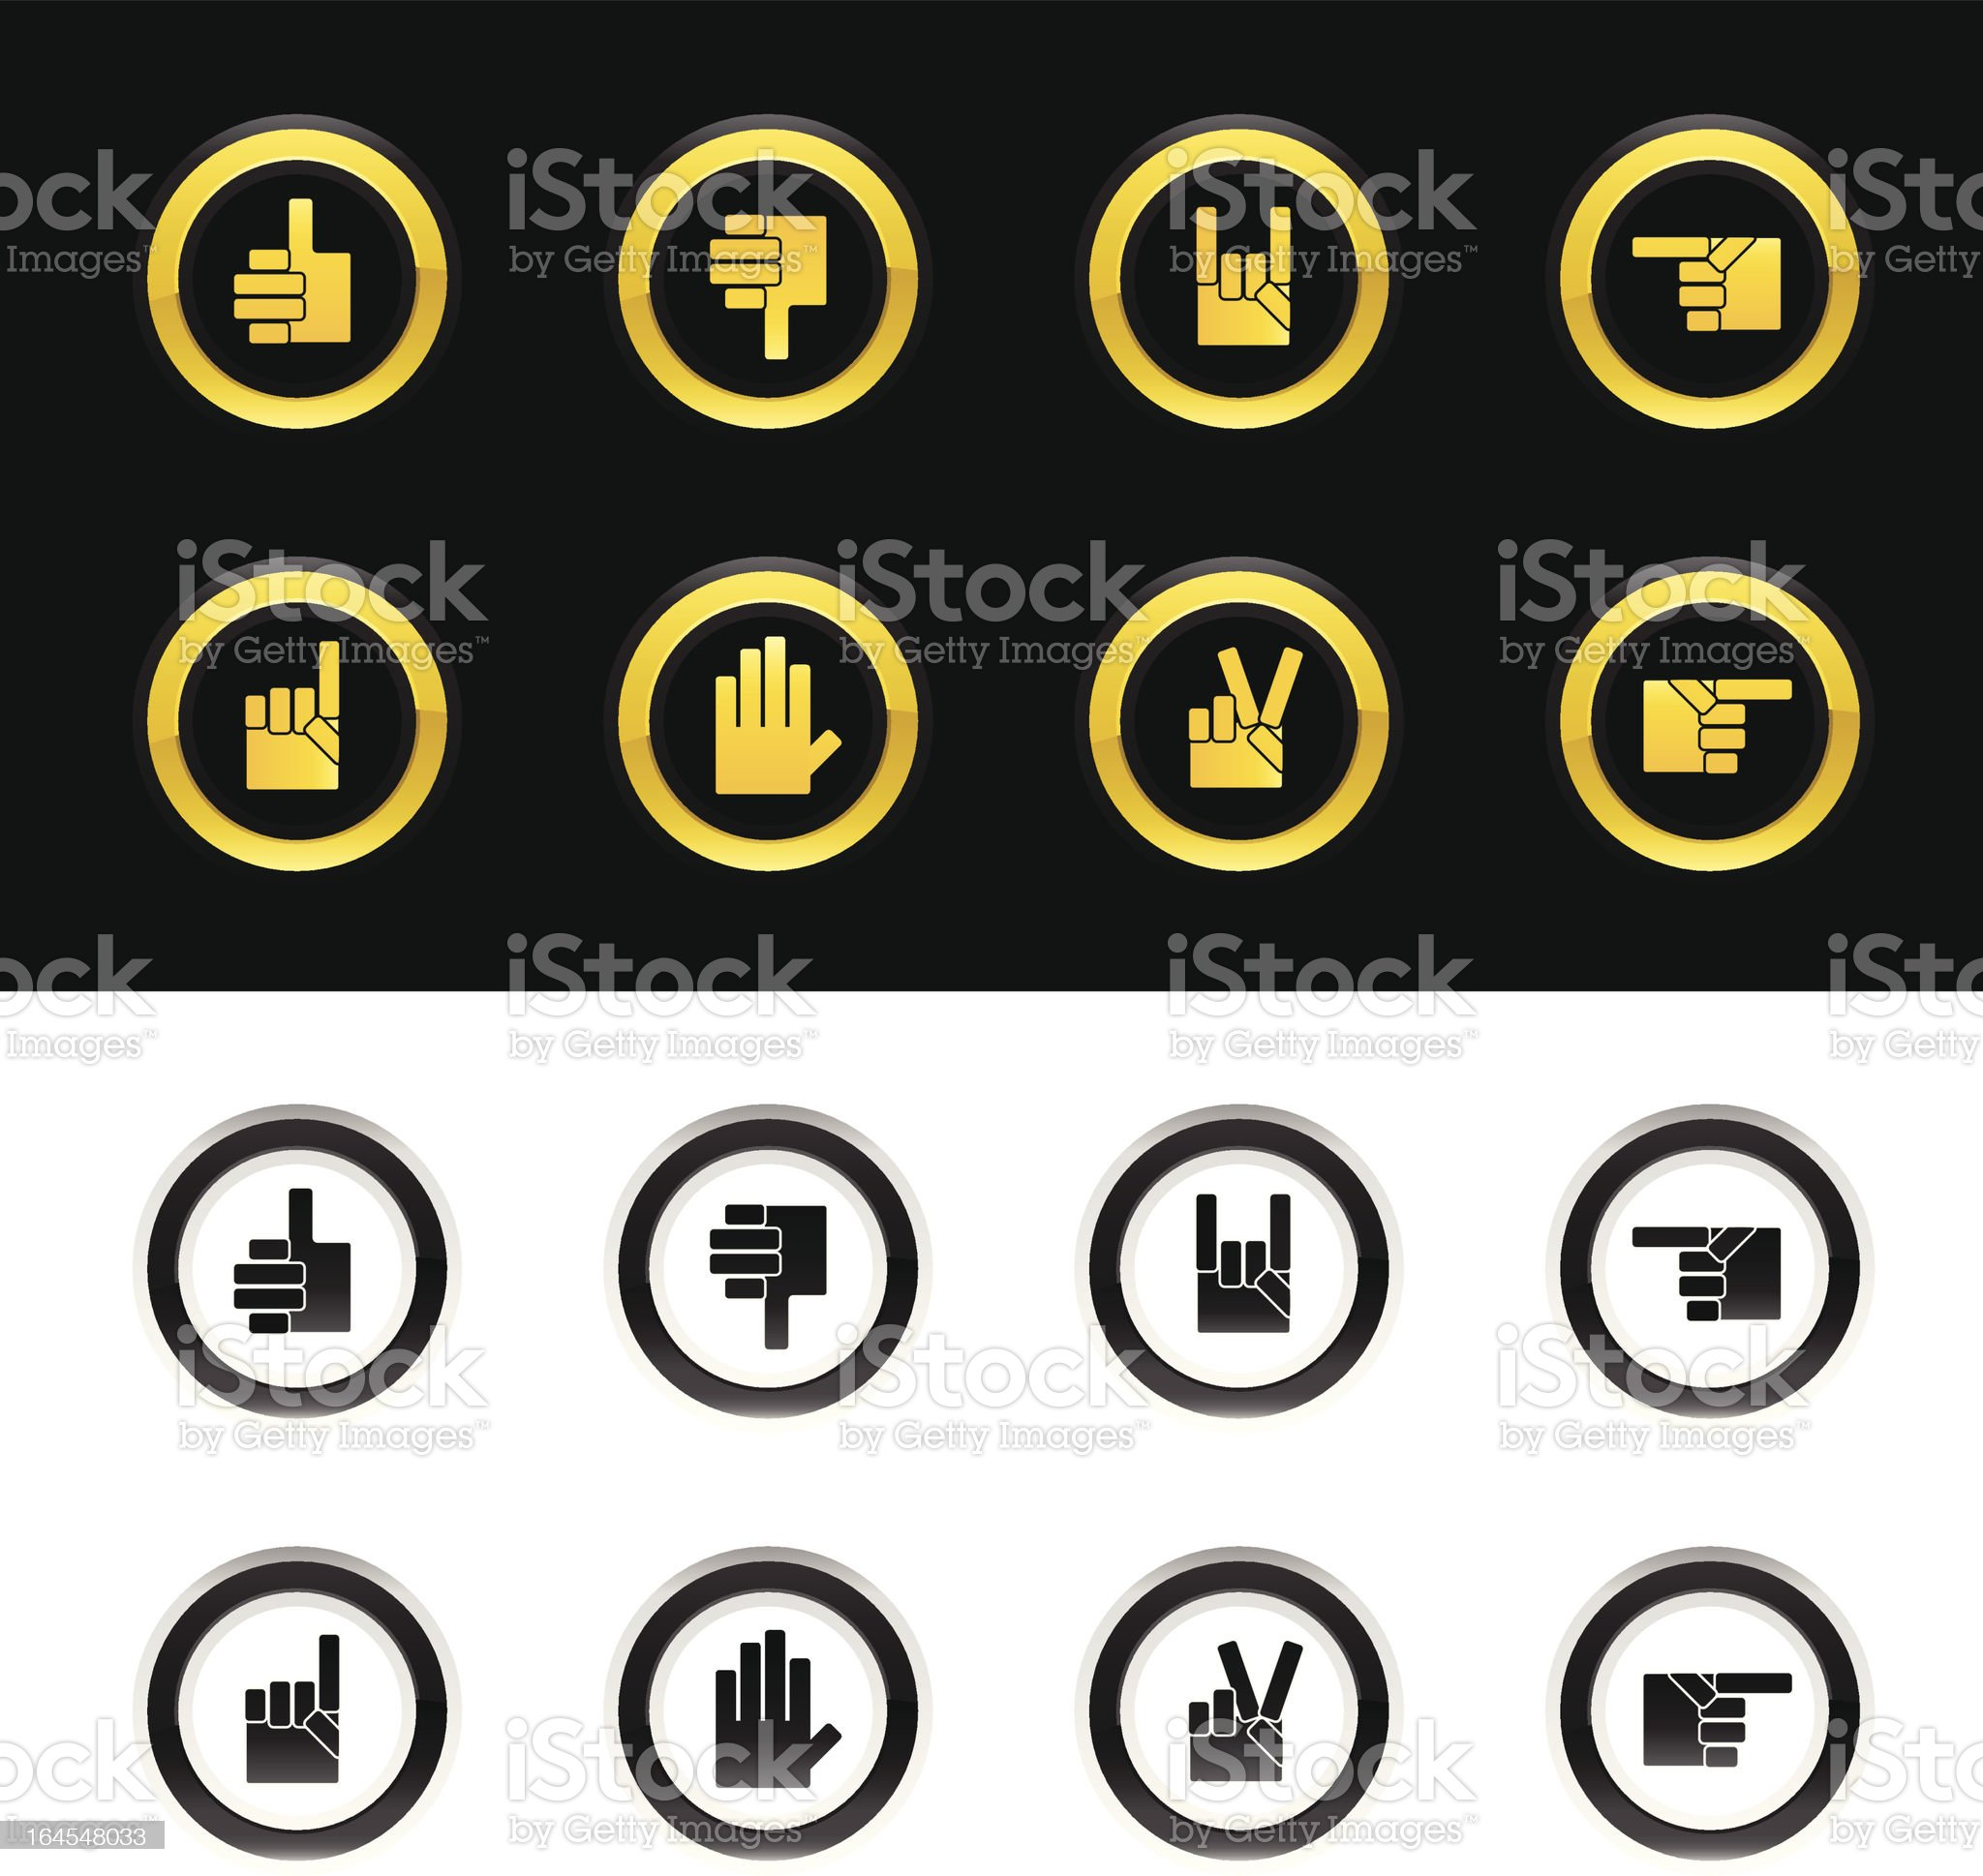 Hand Icons royalty-free stock vector art